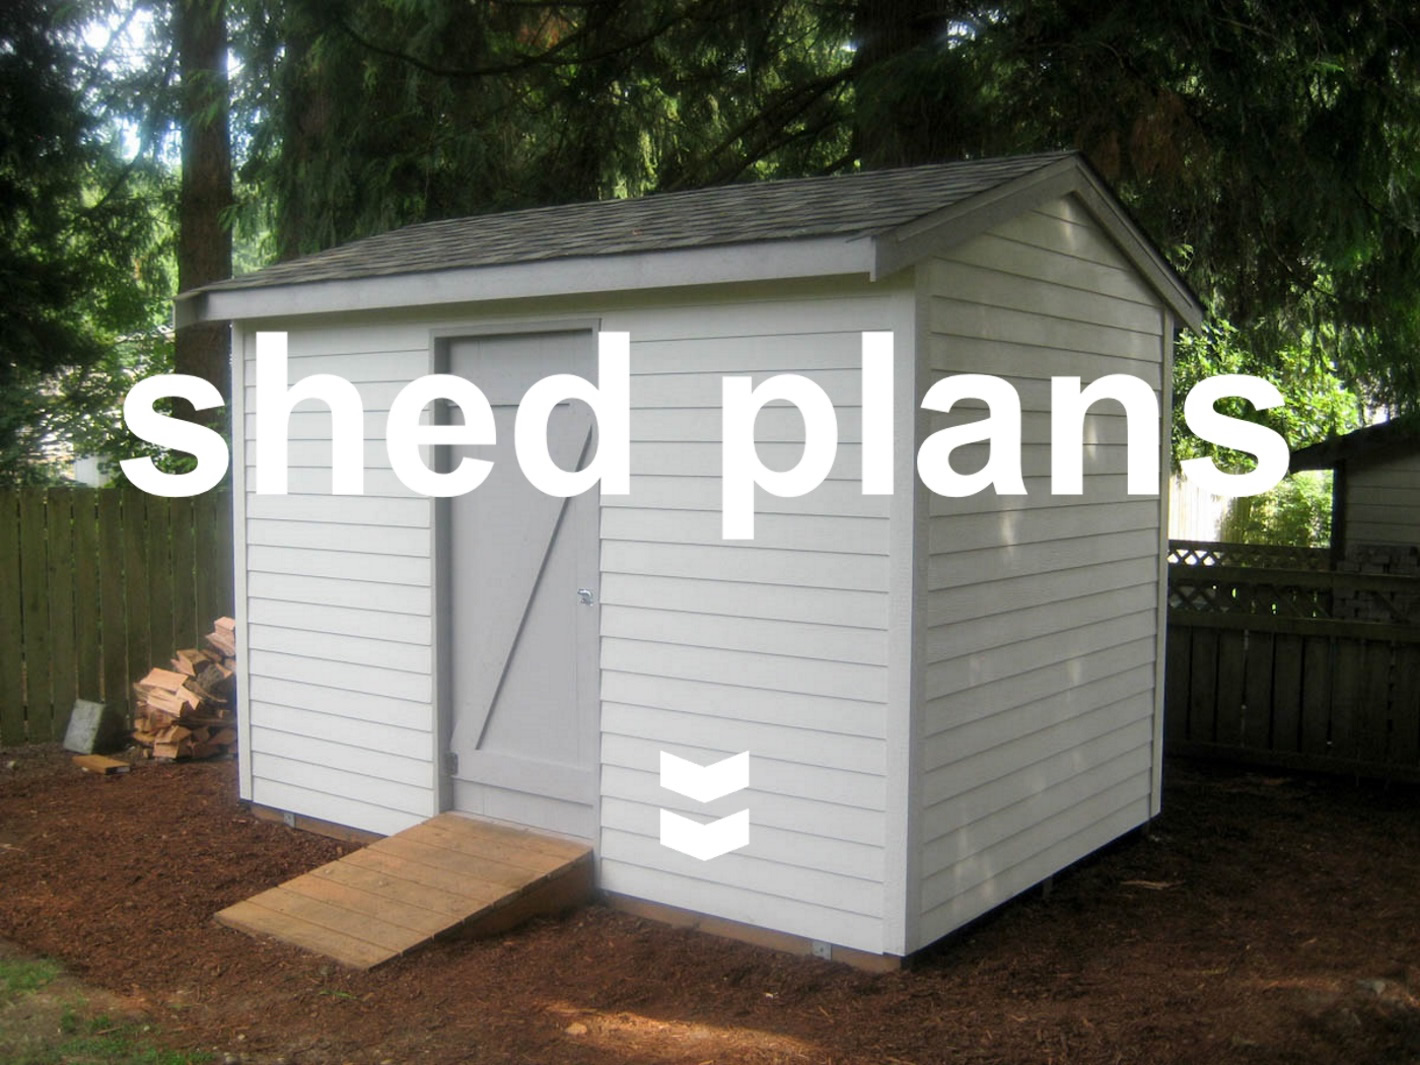 Shed plans for your garden